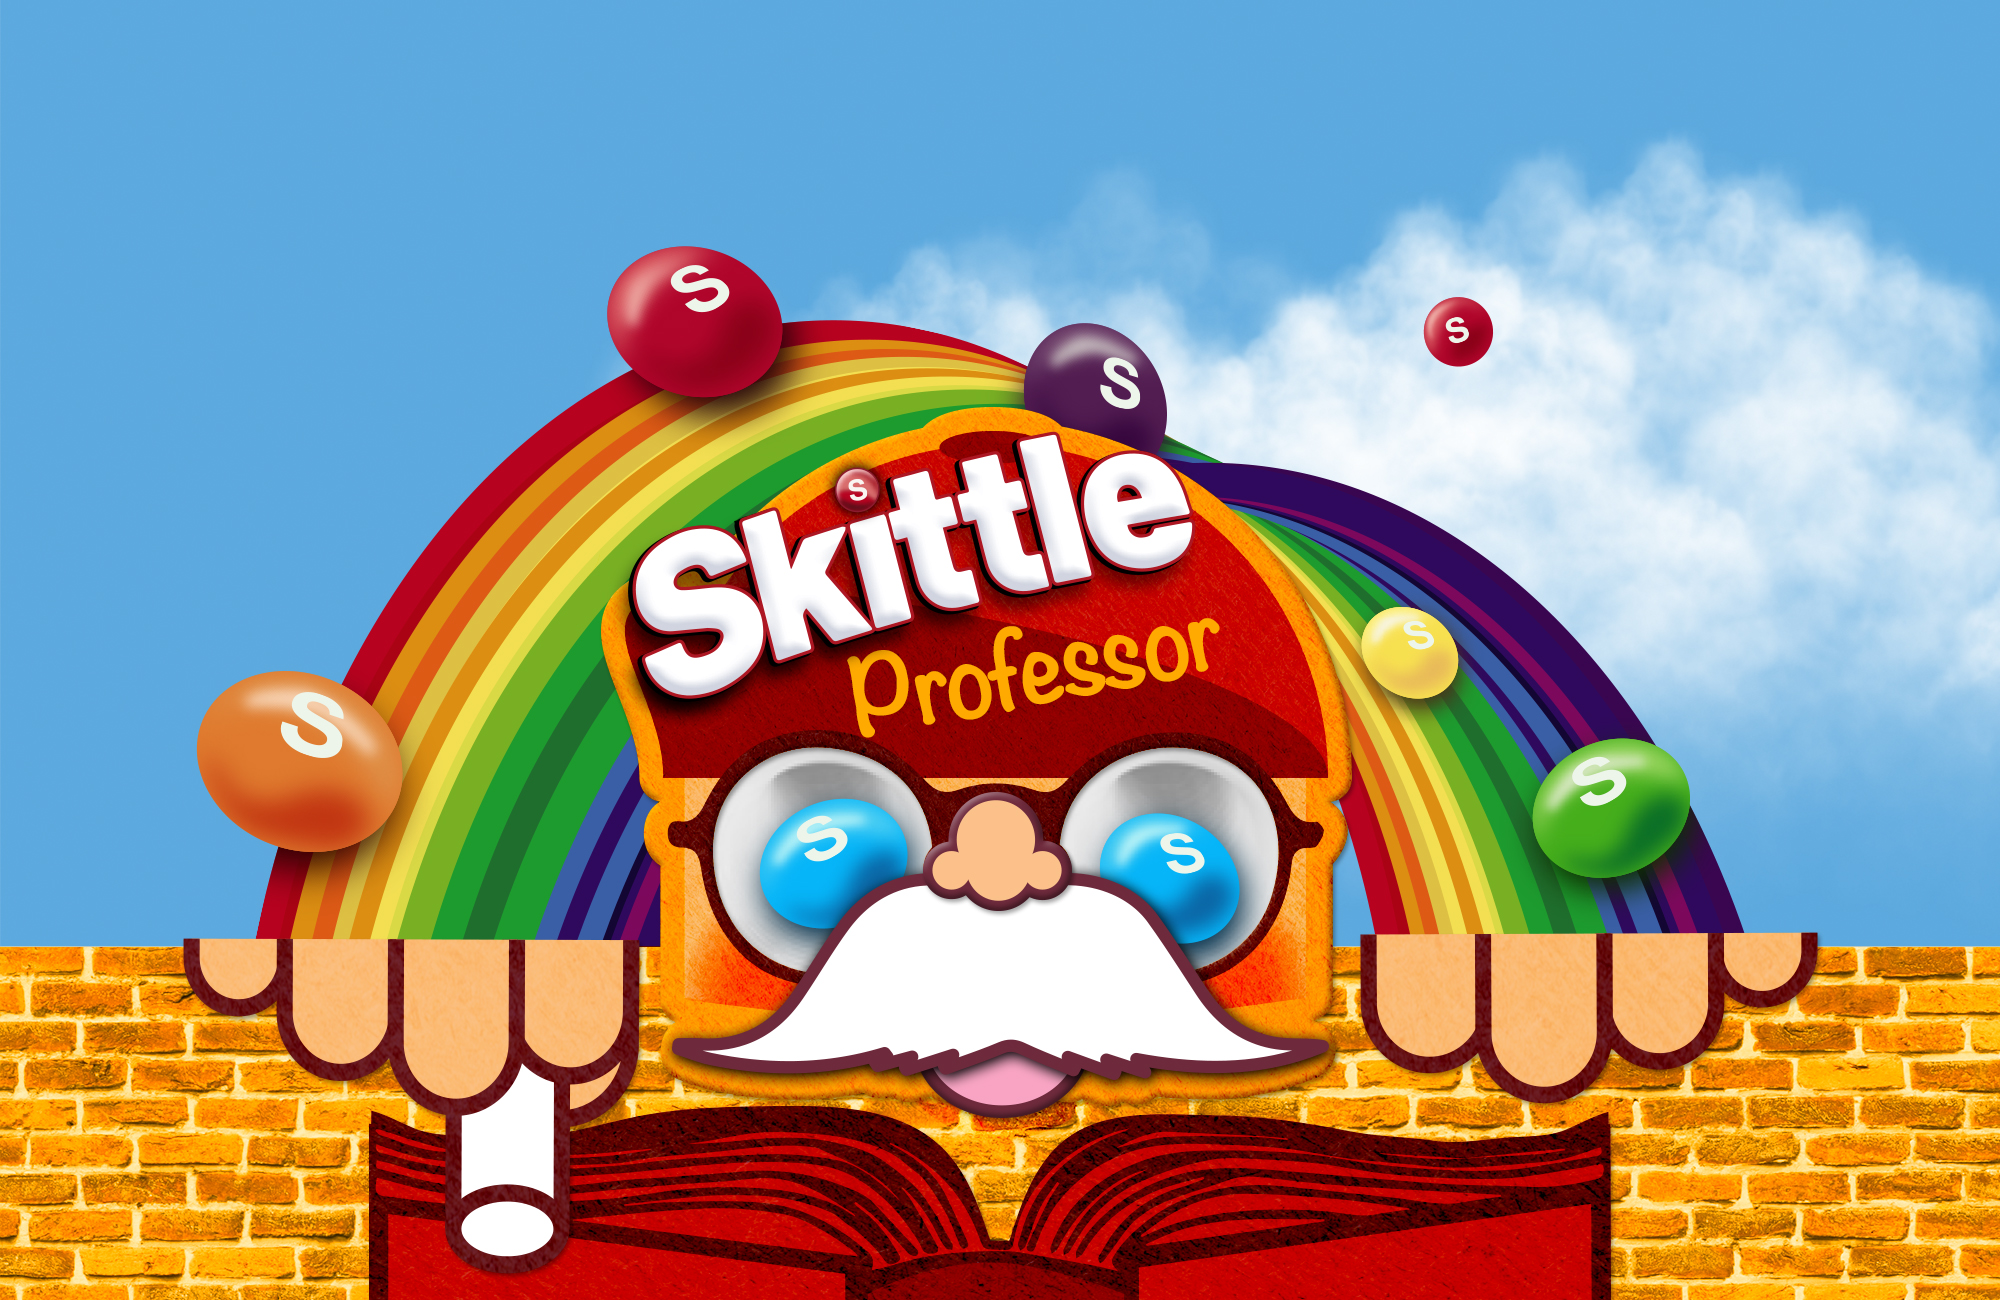 "<span style=""color: #777777"">💰 Skittles <B>Skittle Professor</B></span> - webshop - 2014 E-commerce masterclass"